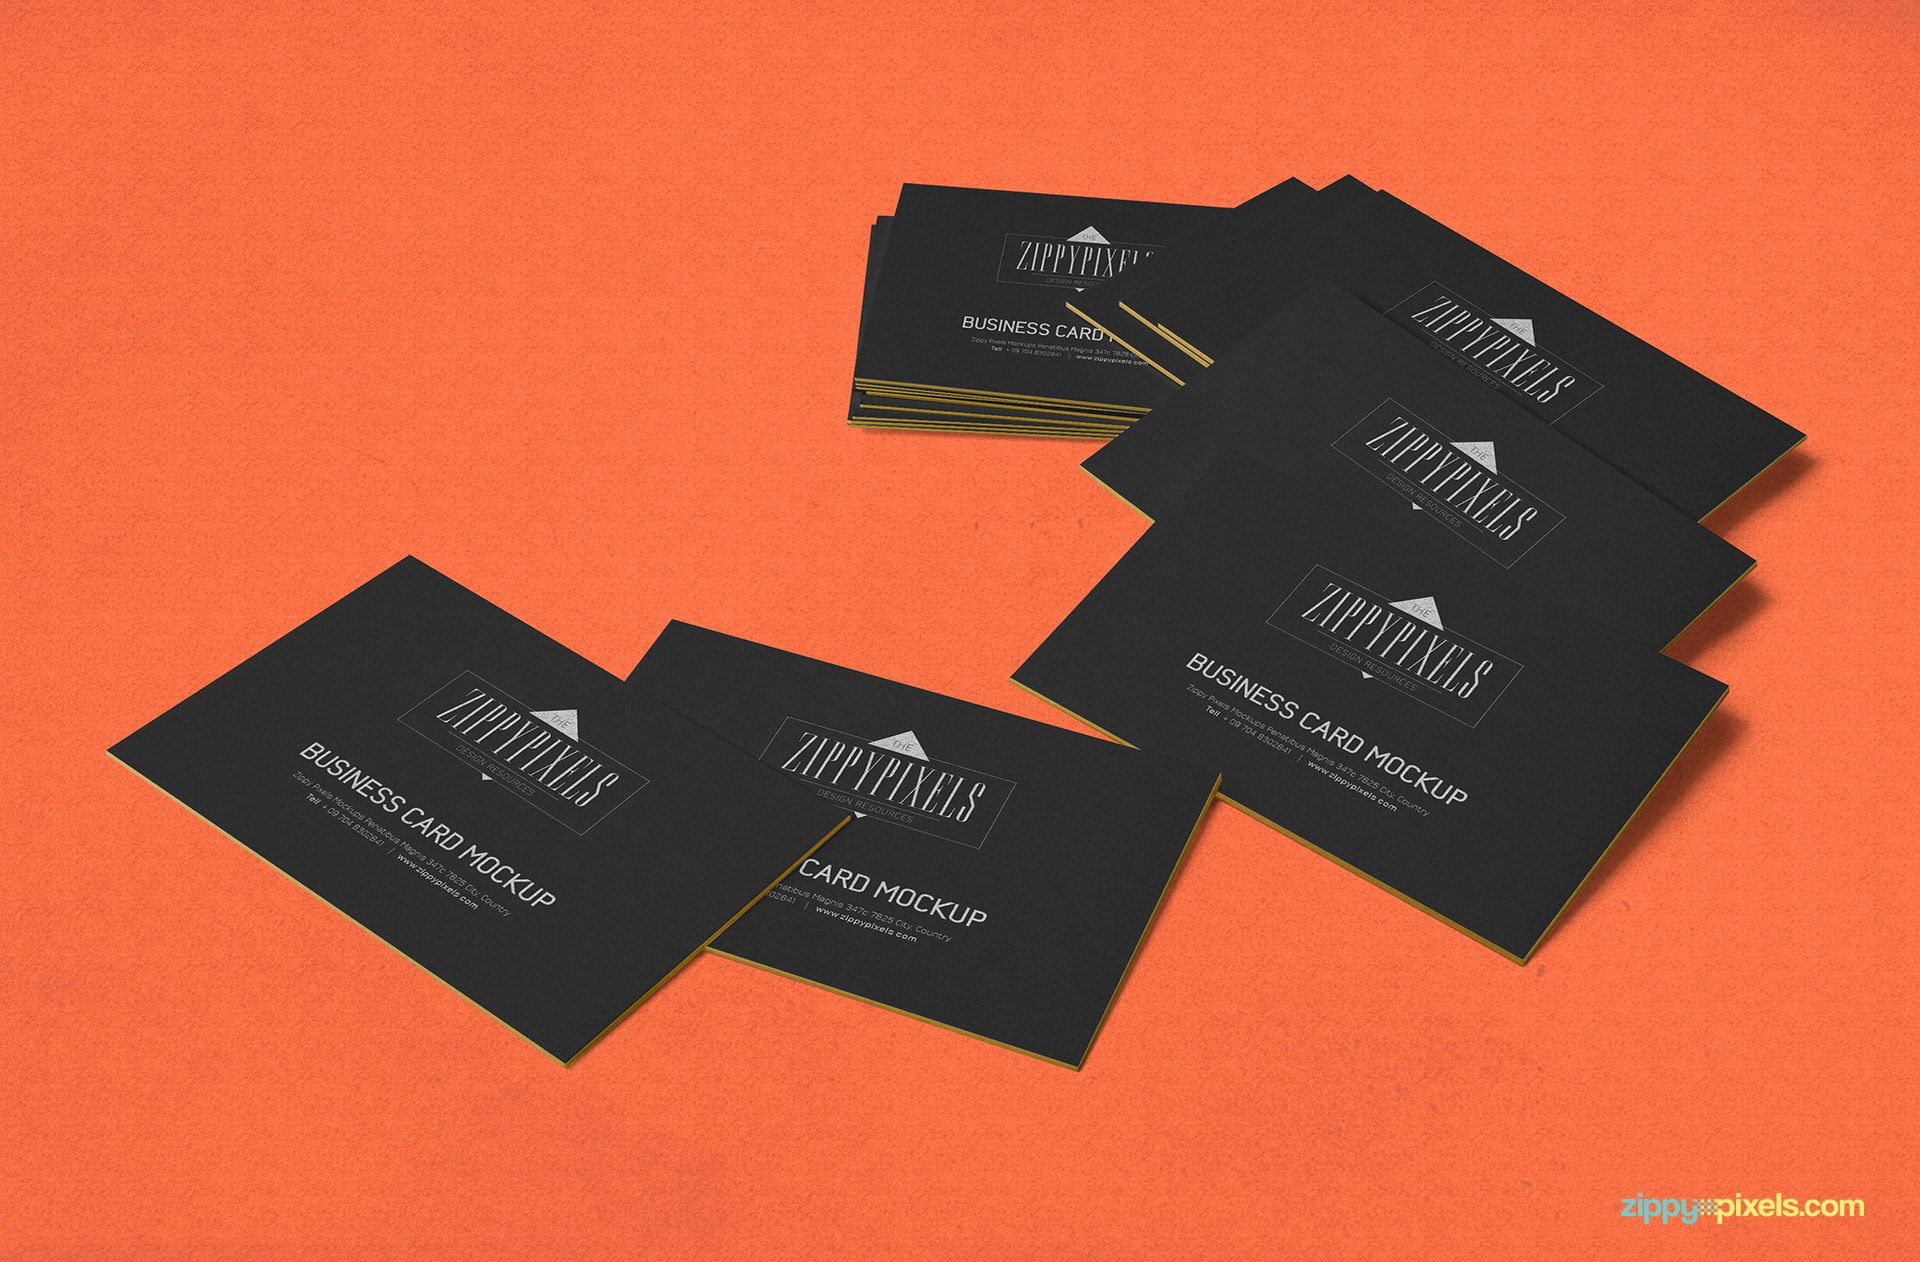 Free business card psd mockup zippypixels 4 bonus mockups included in commercial license stacked business card card scattered colourmoves